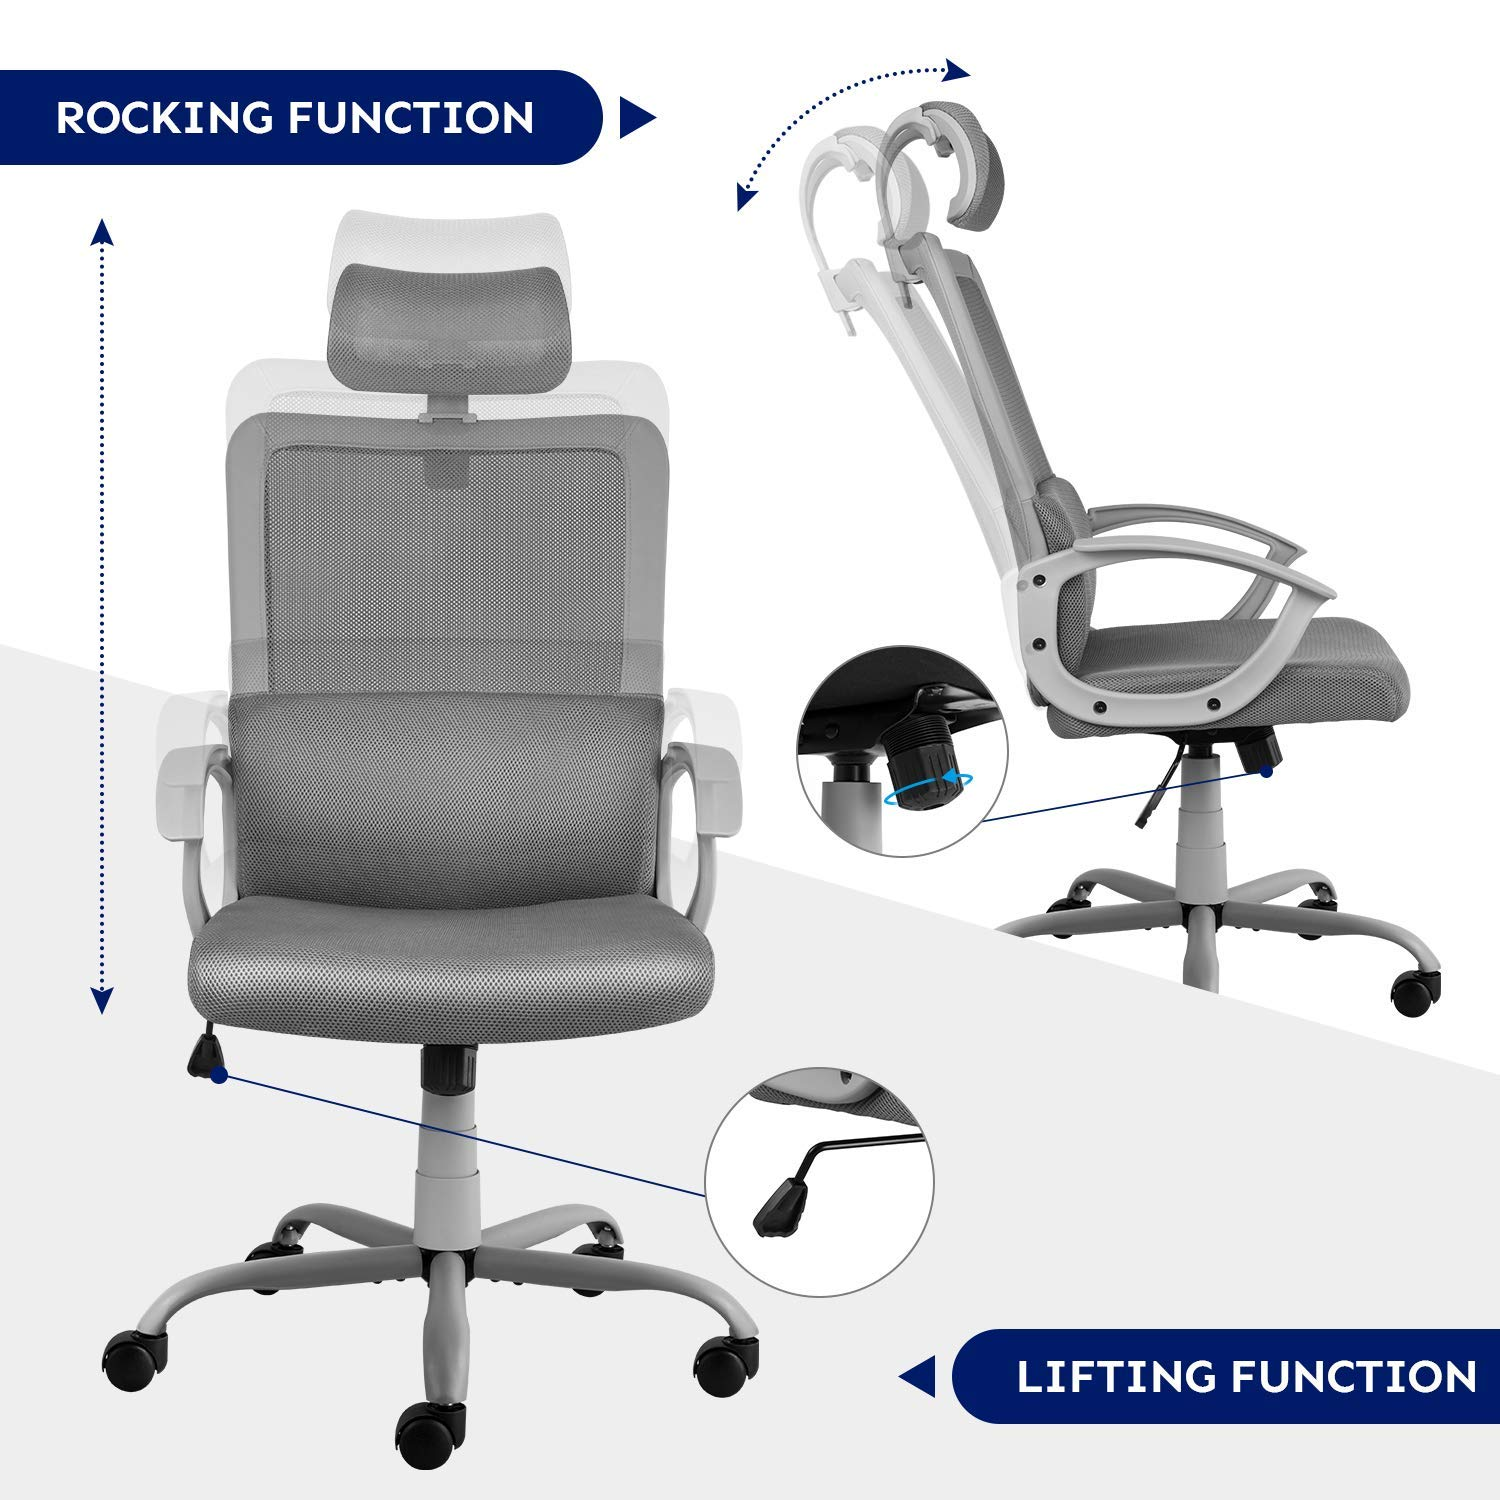 Smugdesk Ergonomic Office Chair High Back Mesh Office Chair Adjustable Headrest Computer Desk Chair for Lumbar Support, Grey by Smugdesk (Image #6)